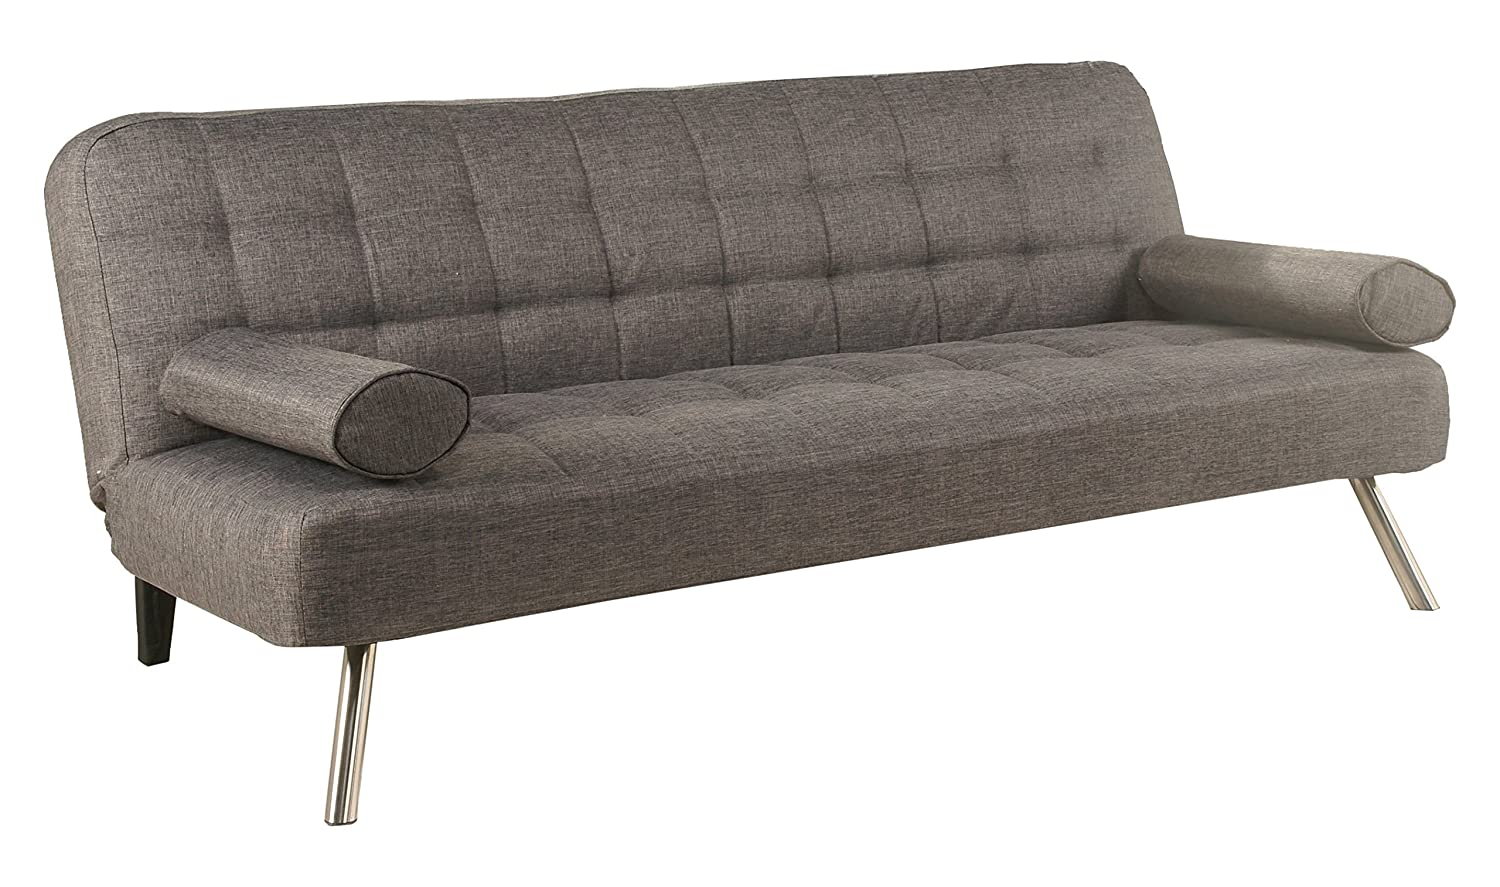 Leader Lifestyle Sofa Bed, Wood, Modern Grey, Three_Seats TBI-PGY-NMX-CSB-ADC509